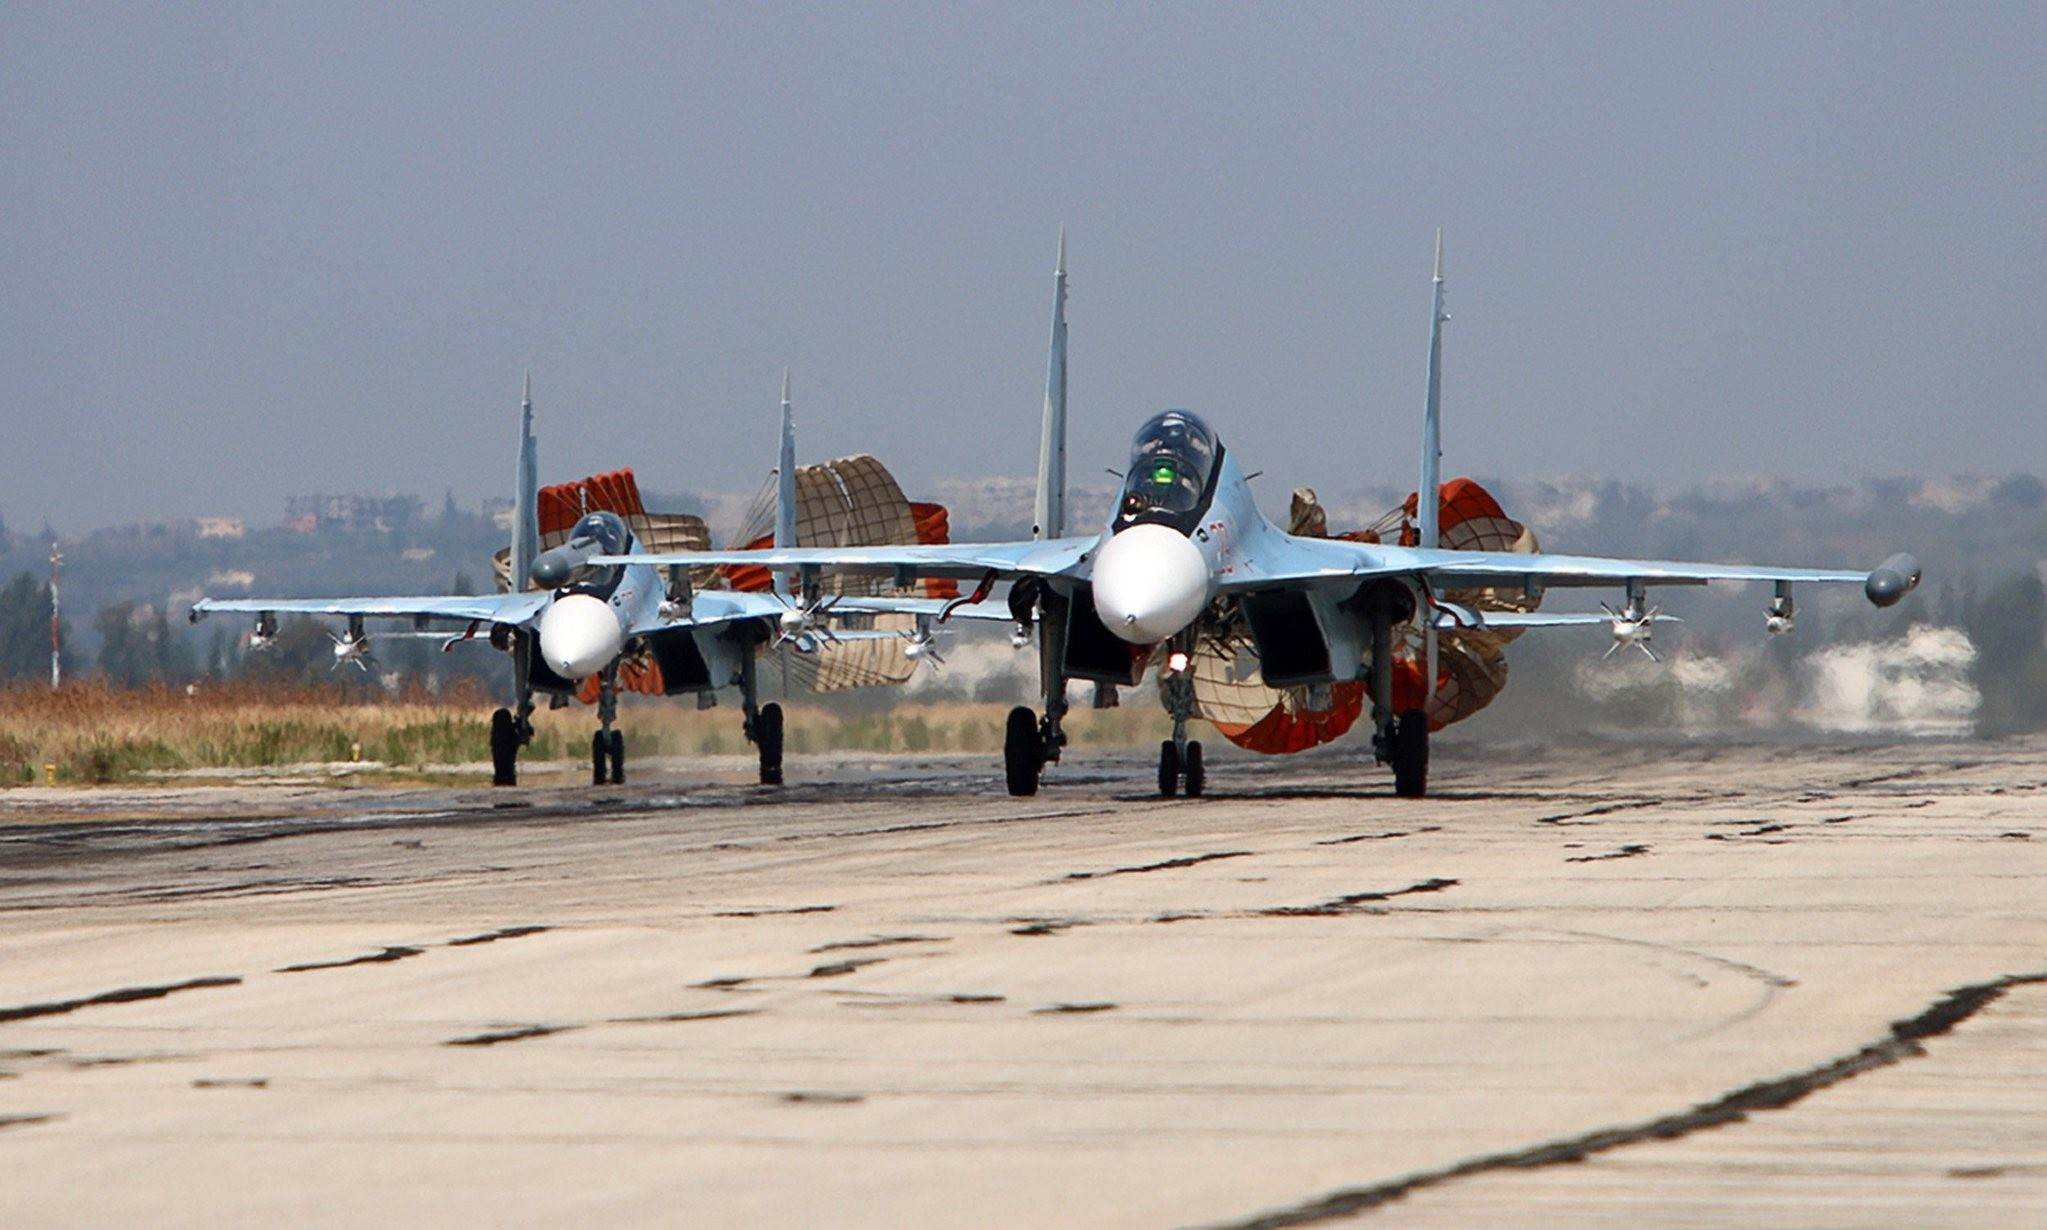 Russian Sukhoi SU-30 SM jet fighters landing on a runway at the Hmeimim airbase in the Syrian province of Latakia. (AFP PHOTO)